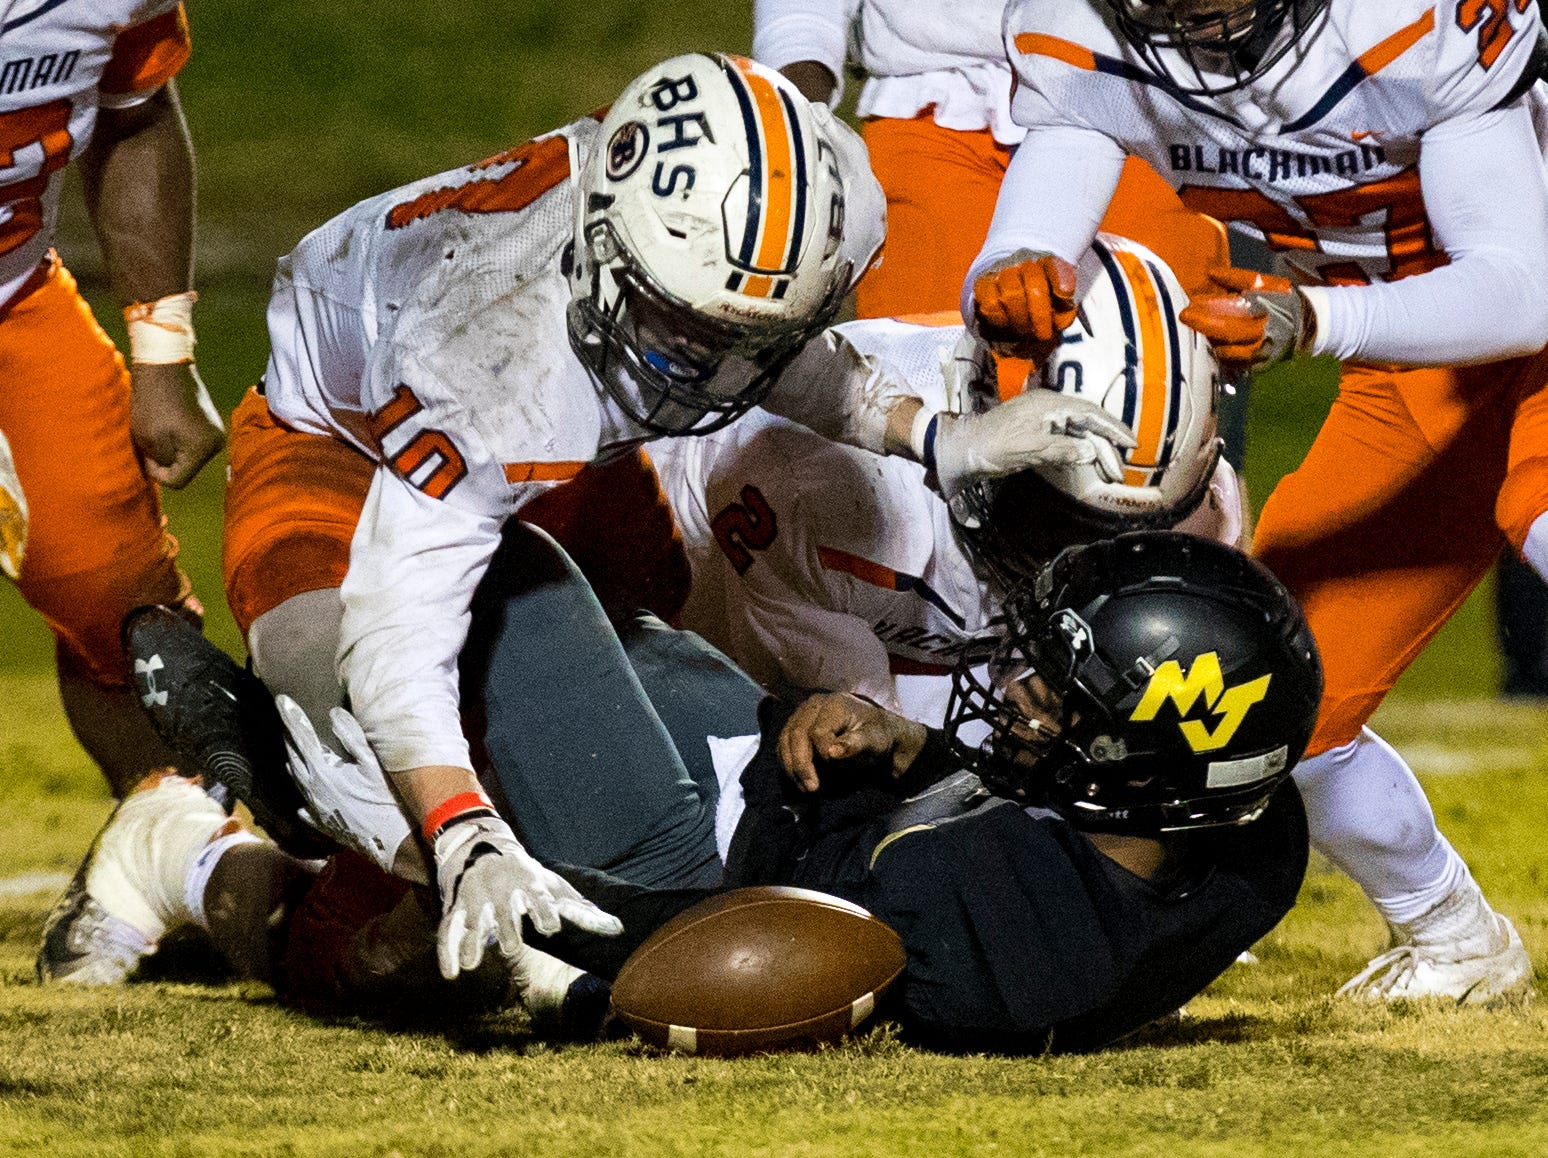 Blackman's Dejeun Gibson (10) falls on a loose ball during Mt. Juliet's game against Blackman at Mt. Juliet High School in Mt. Juliet on Friday, Nov. 9, 2018.